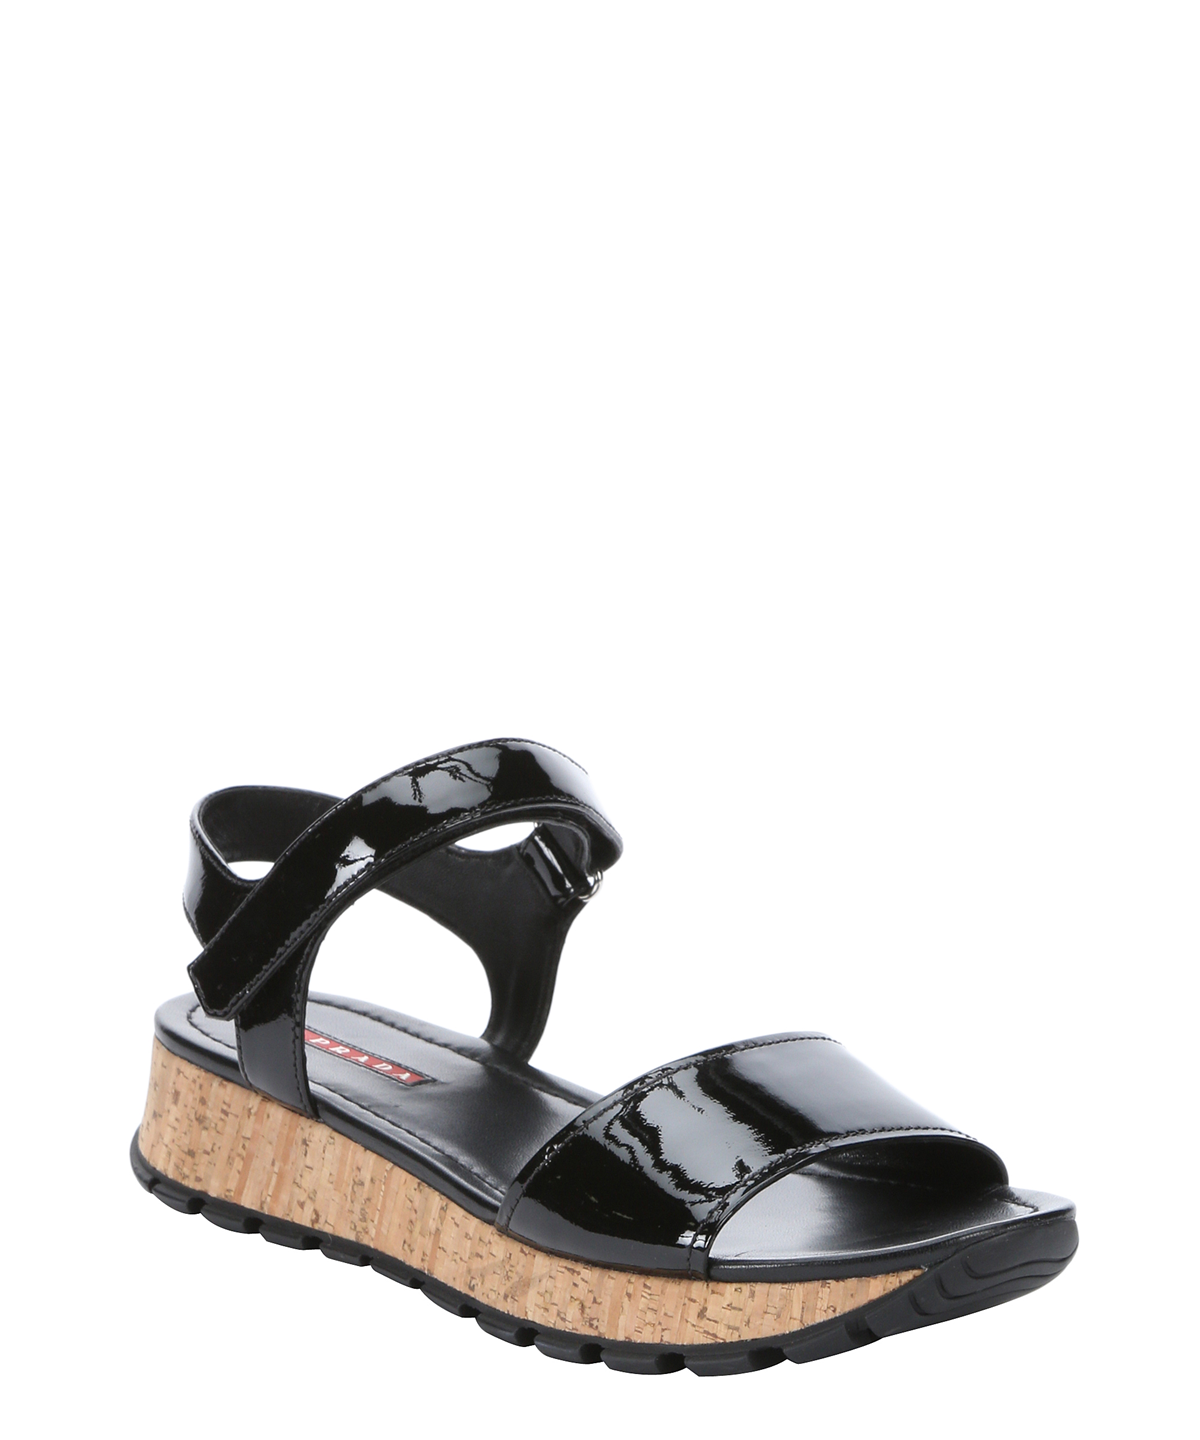 Black Patentamp; Cork In Sandal' Double Band Wedge SzMUVp